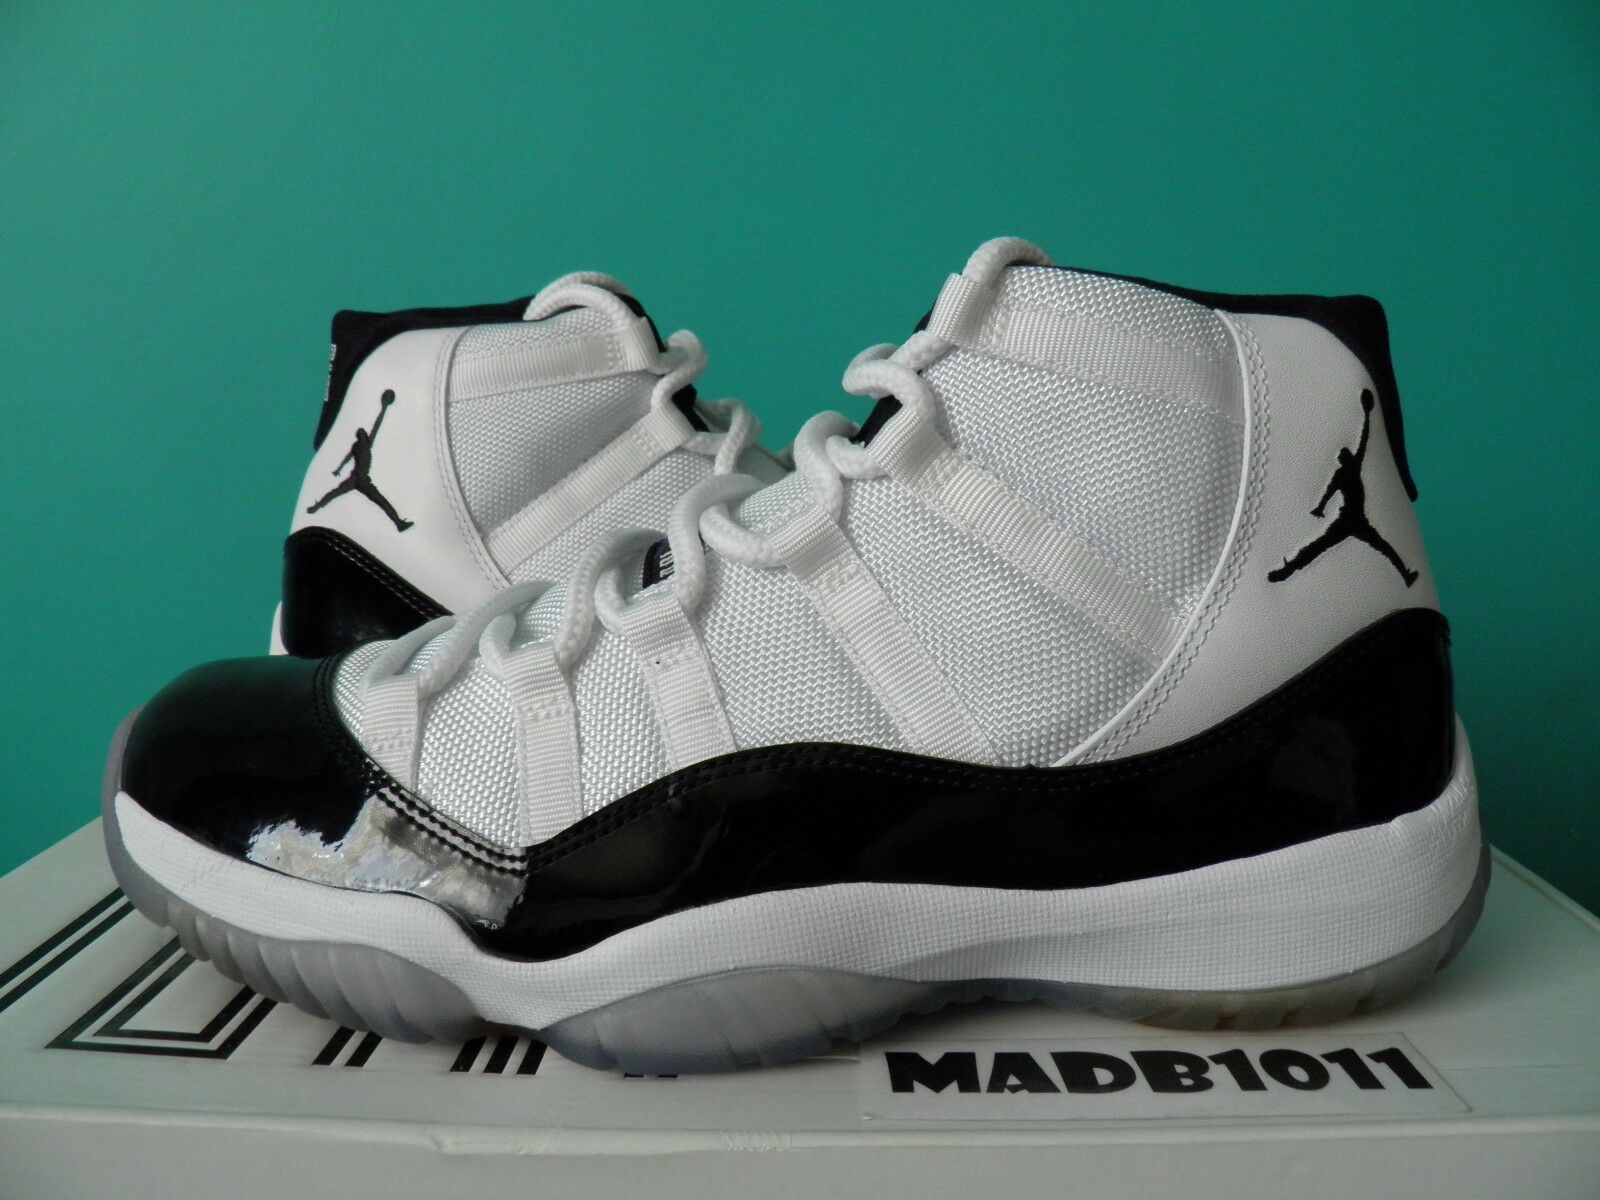 buy popular bd1b3 974c9 NEW AIR JORDAN JORDAN JORDAN 11 XI CONCORD 2011 RETRO US 8.5 WHITE BLACK  RED 378037